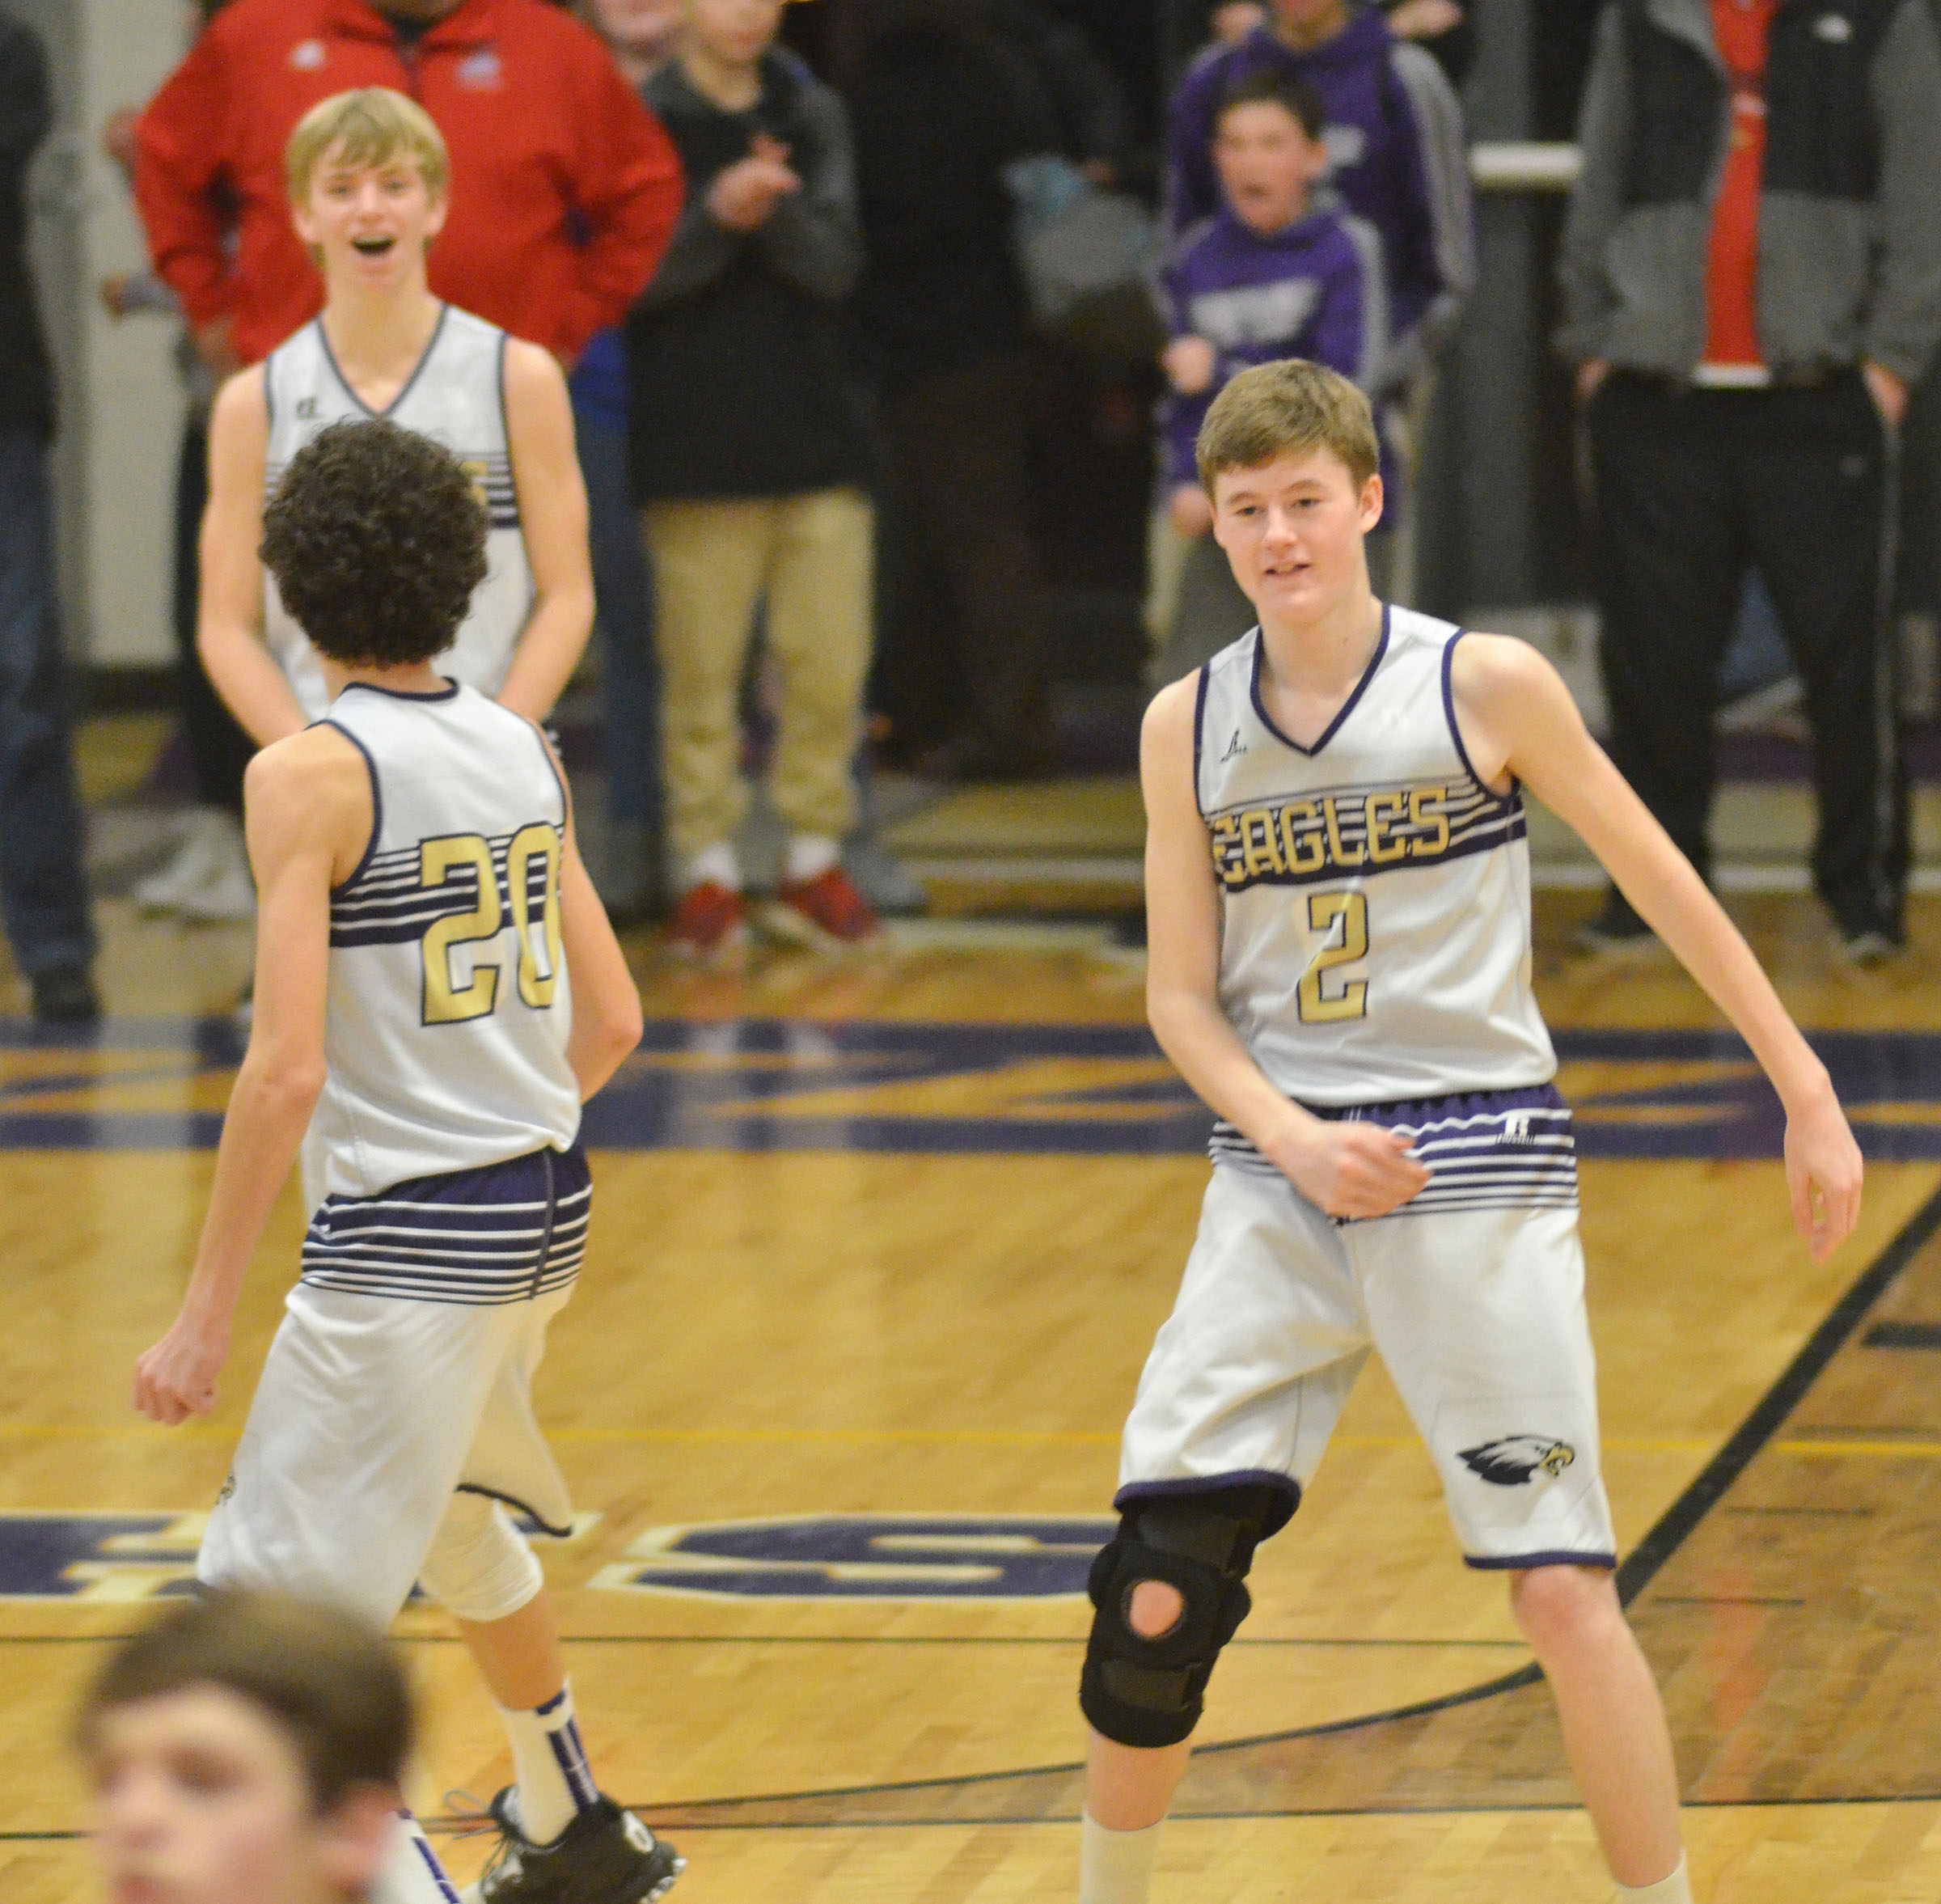 CMs eighth-graders Kameron Smith, at left, and Tristin Faulkner begin to celebrate their win with teammate Arren Hash, in back.